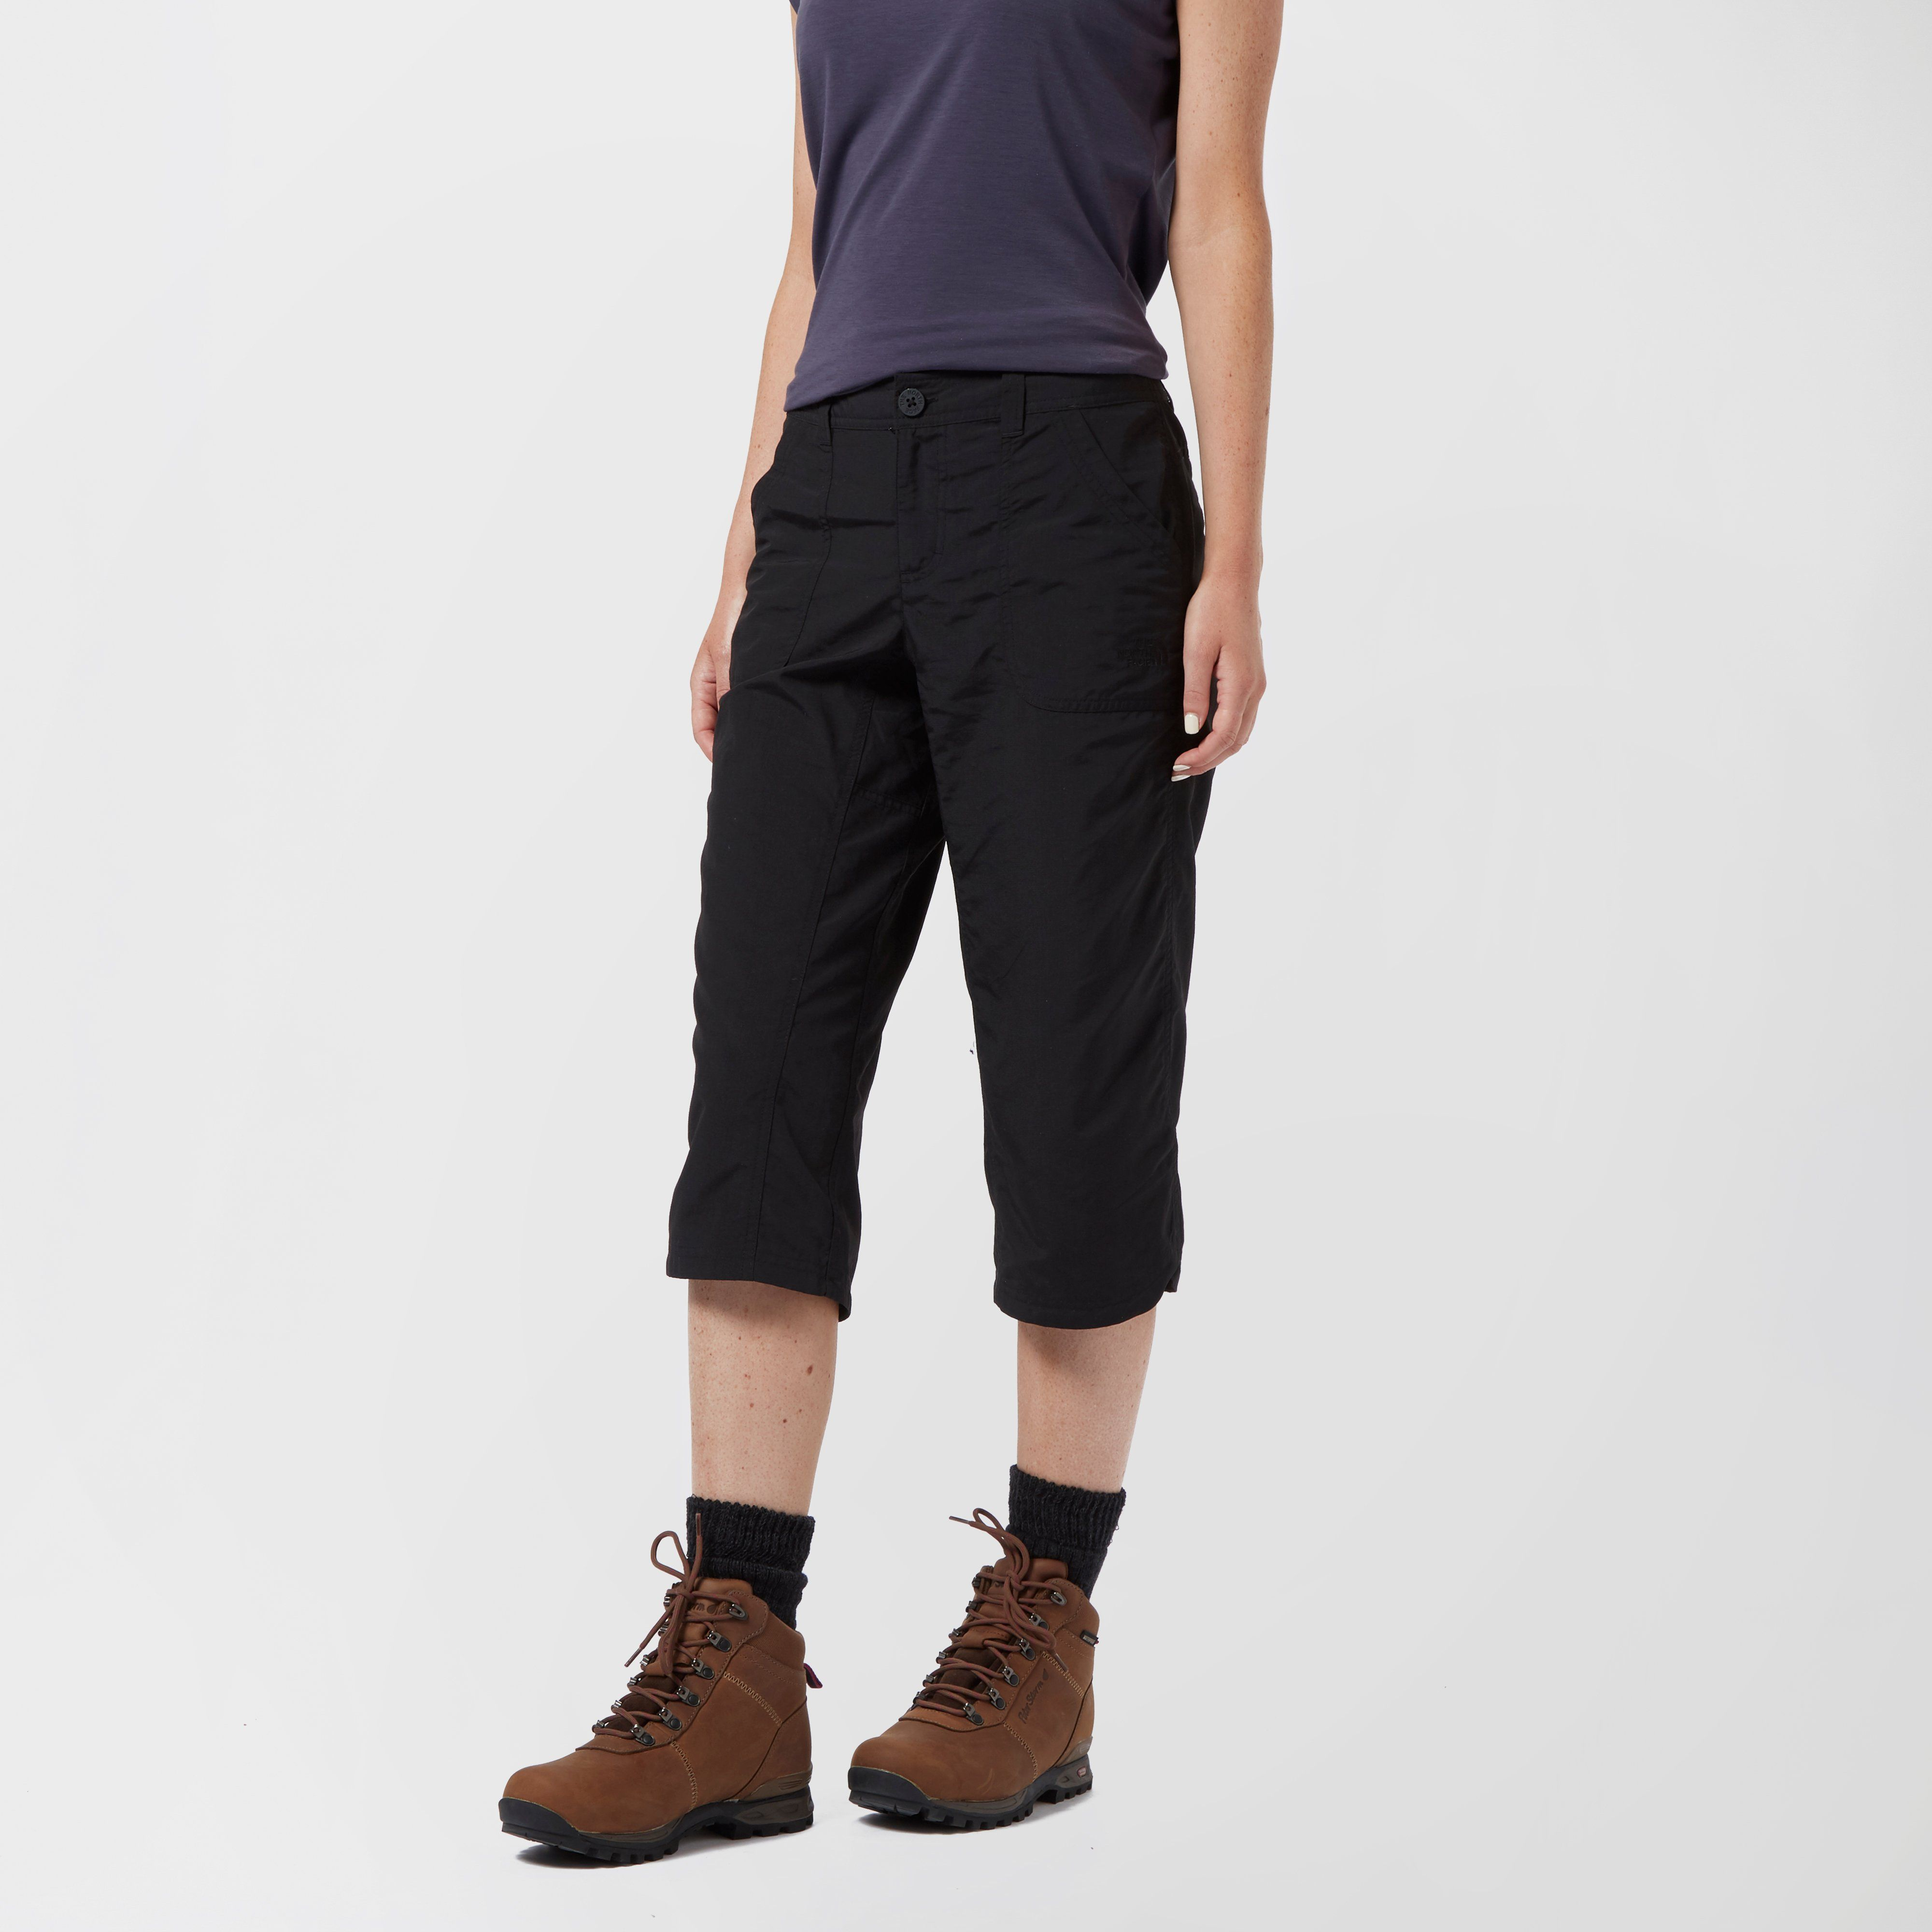 THE NORTH FACE Women's Horizon Betty Capri Shorts